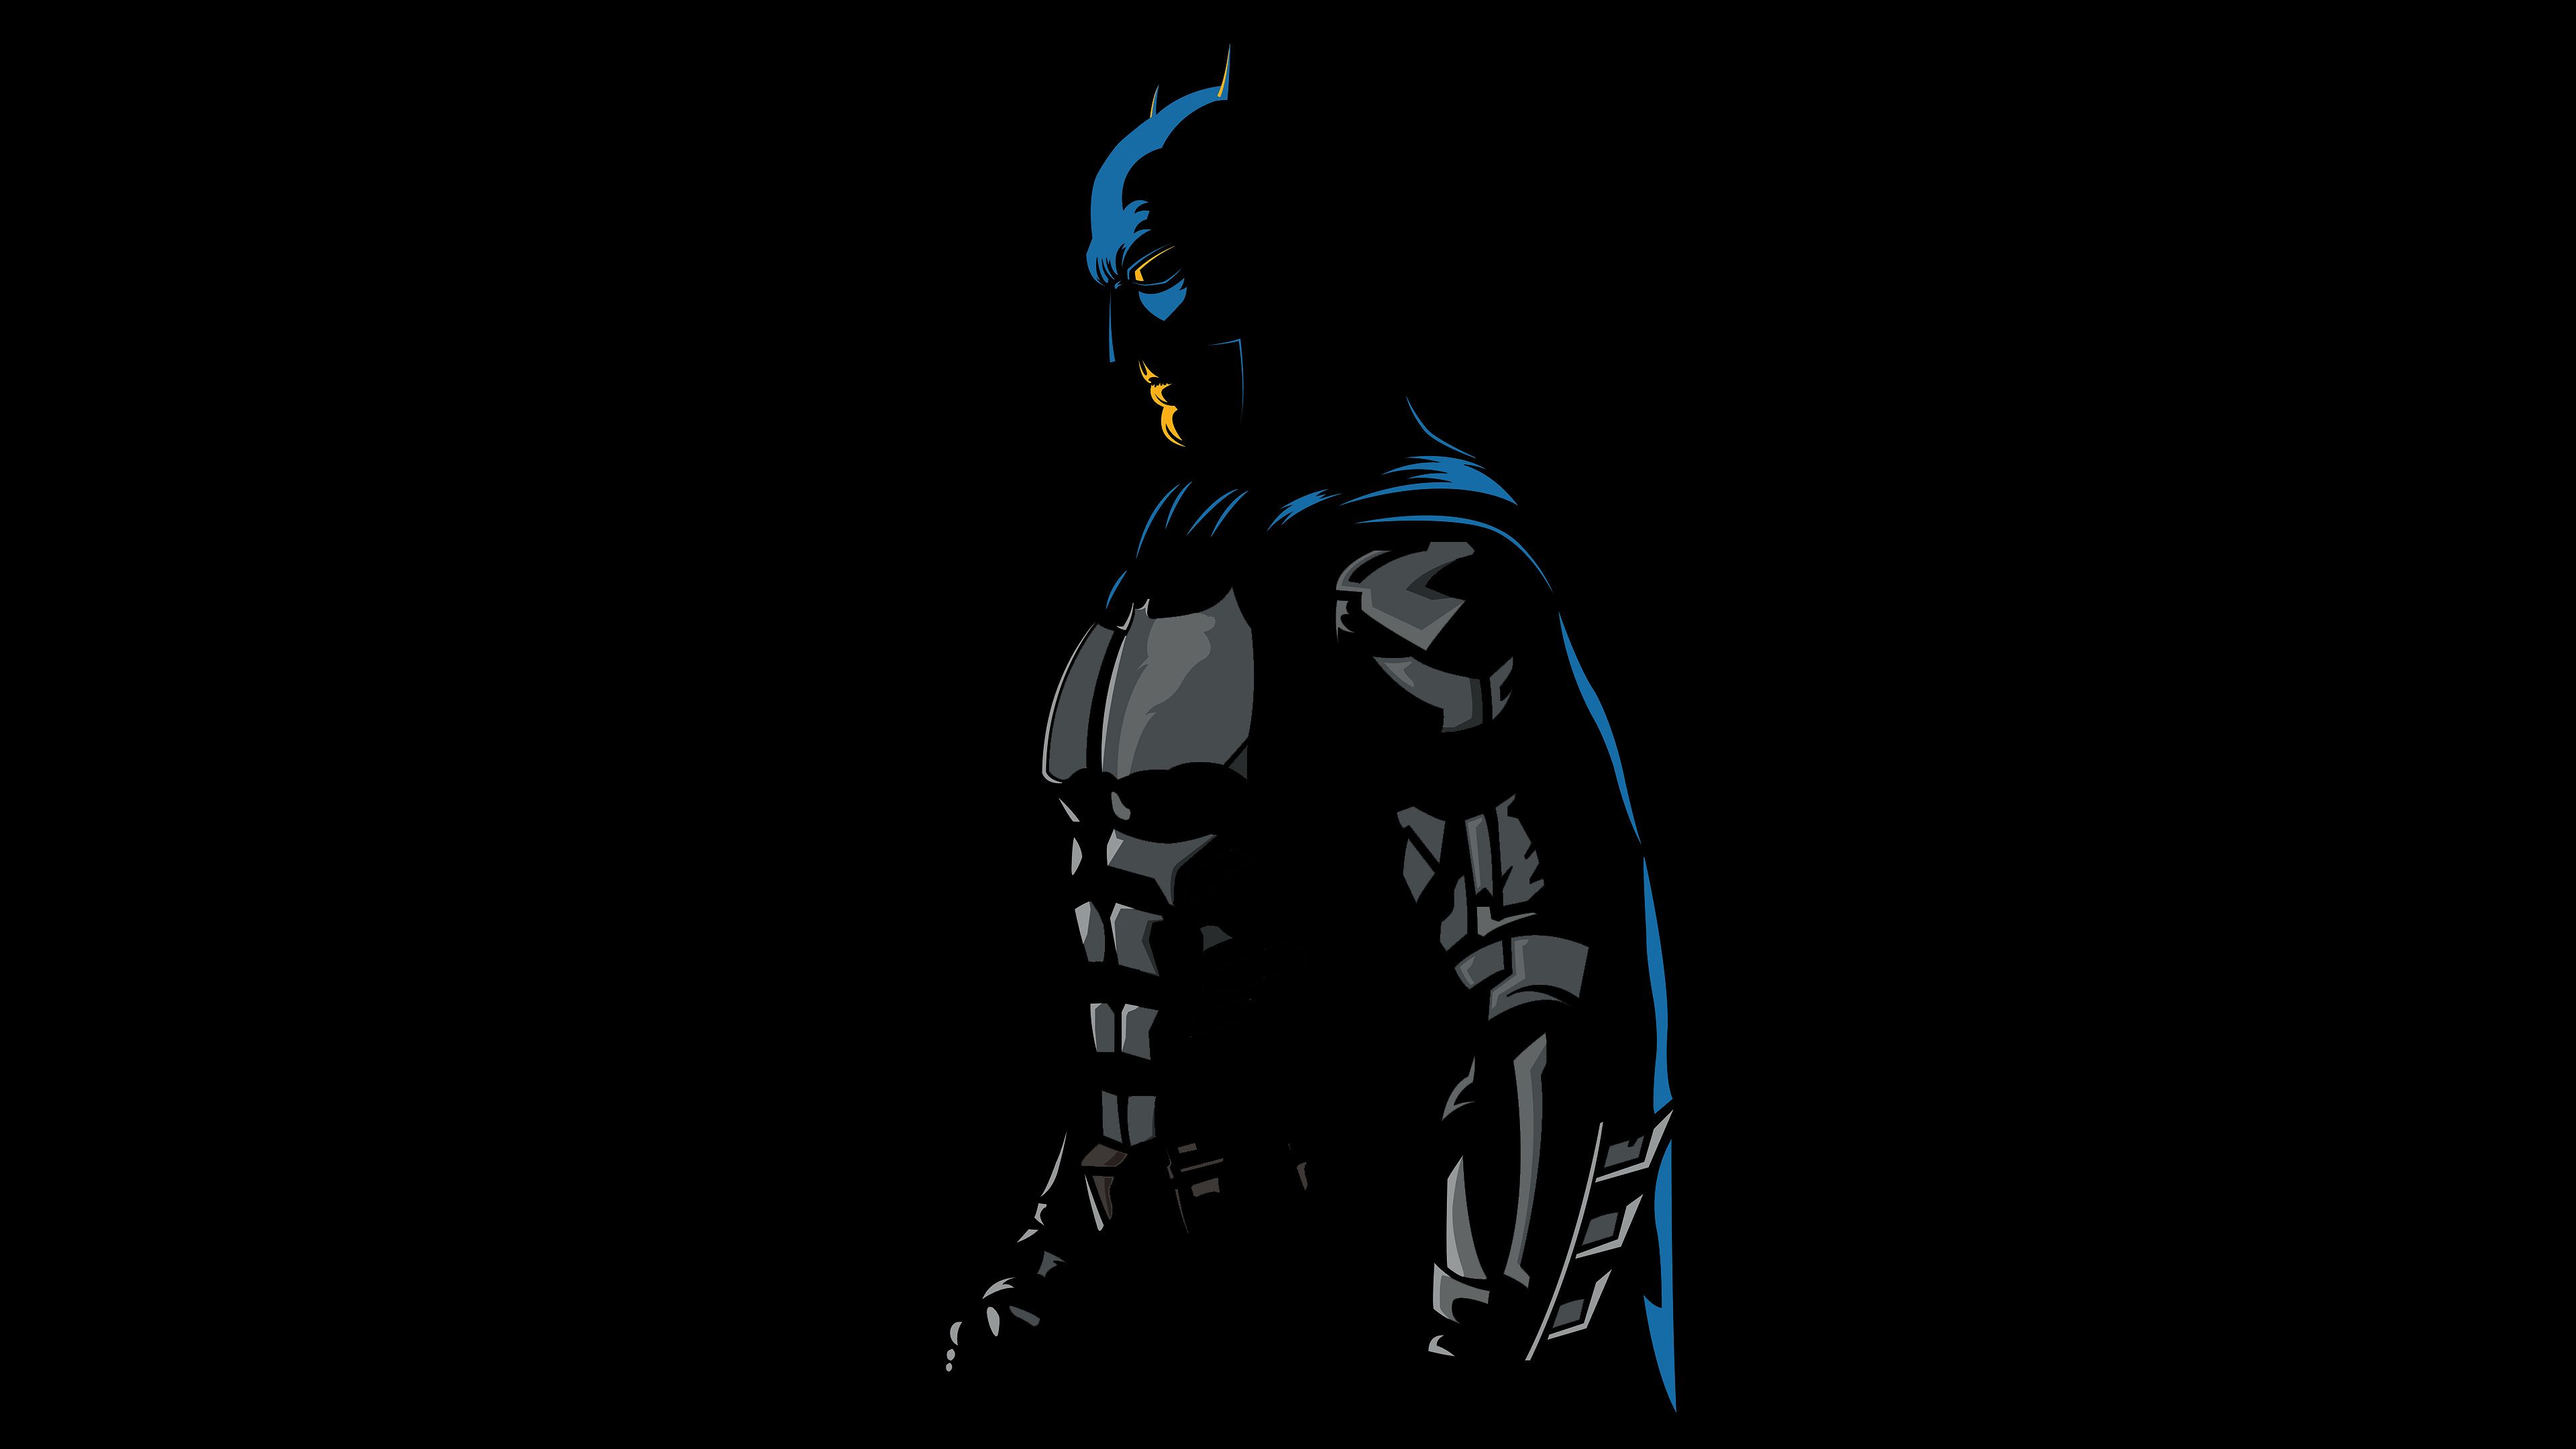 Batman 4k Minimalism Artwork Superheroes Wallpapers Minimalism Wallpapers Hd Wallpapers Digital Art Wallpapers Batman Wallpaper Art Wallpaper Hd Wallpaper